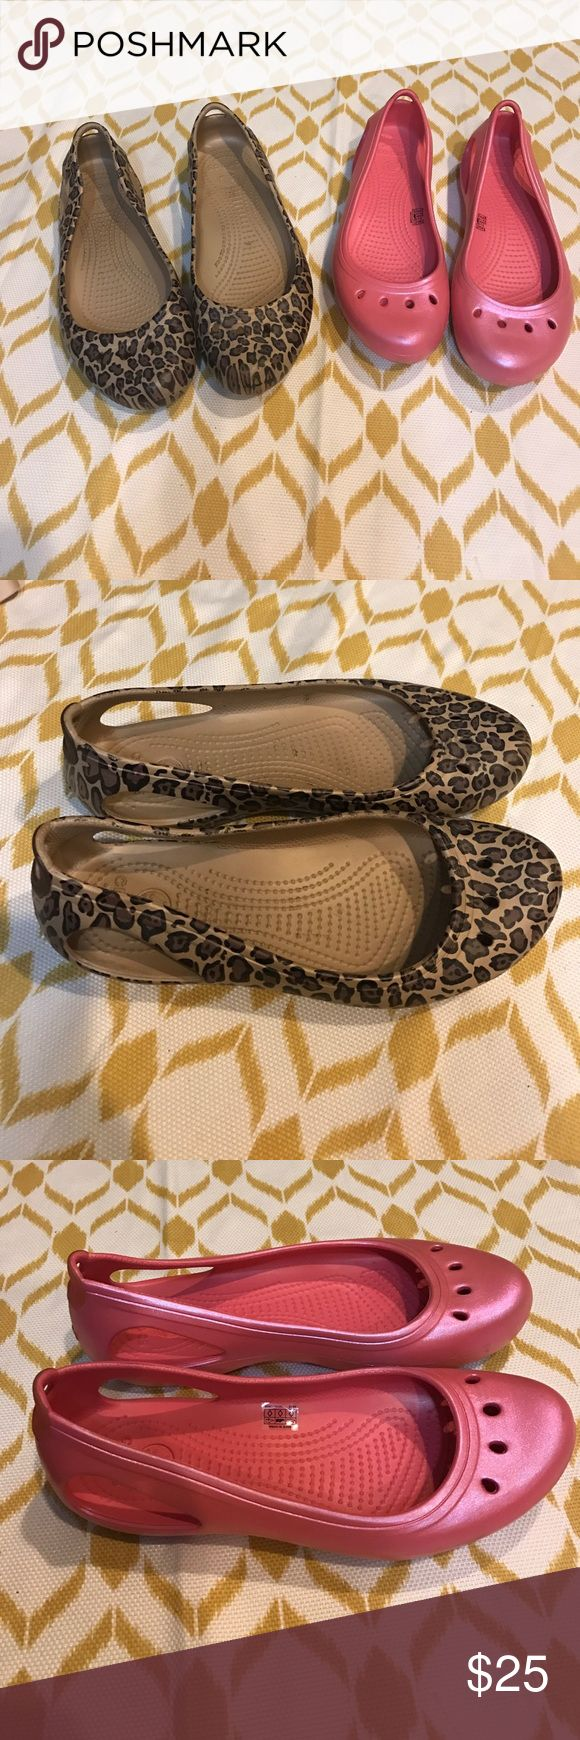 2 pairs of women's crocs flat slip ons size 9 2 pairs of women's crocs, both size 9. One is a pink pair and the second pair is an animal print. Both are slide on flats. Both in excellent used condition with very little wear! CROCS Shoes Flats & Loafers